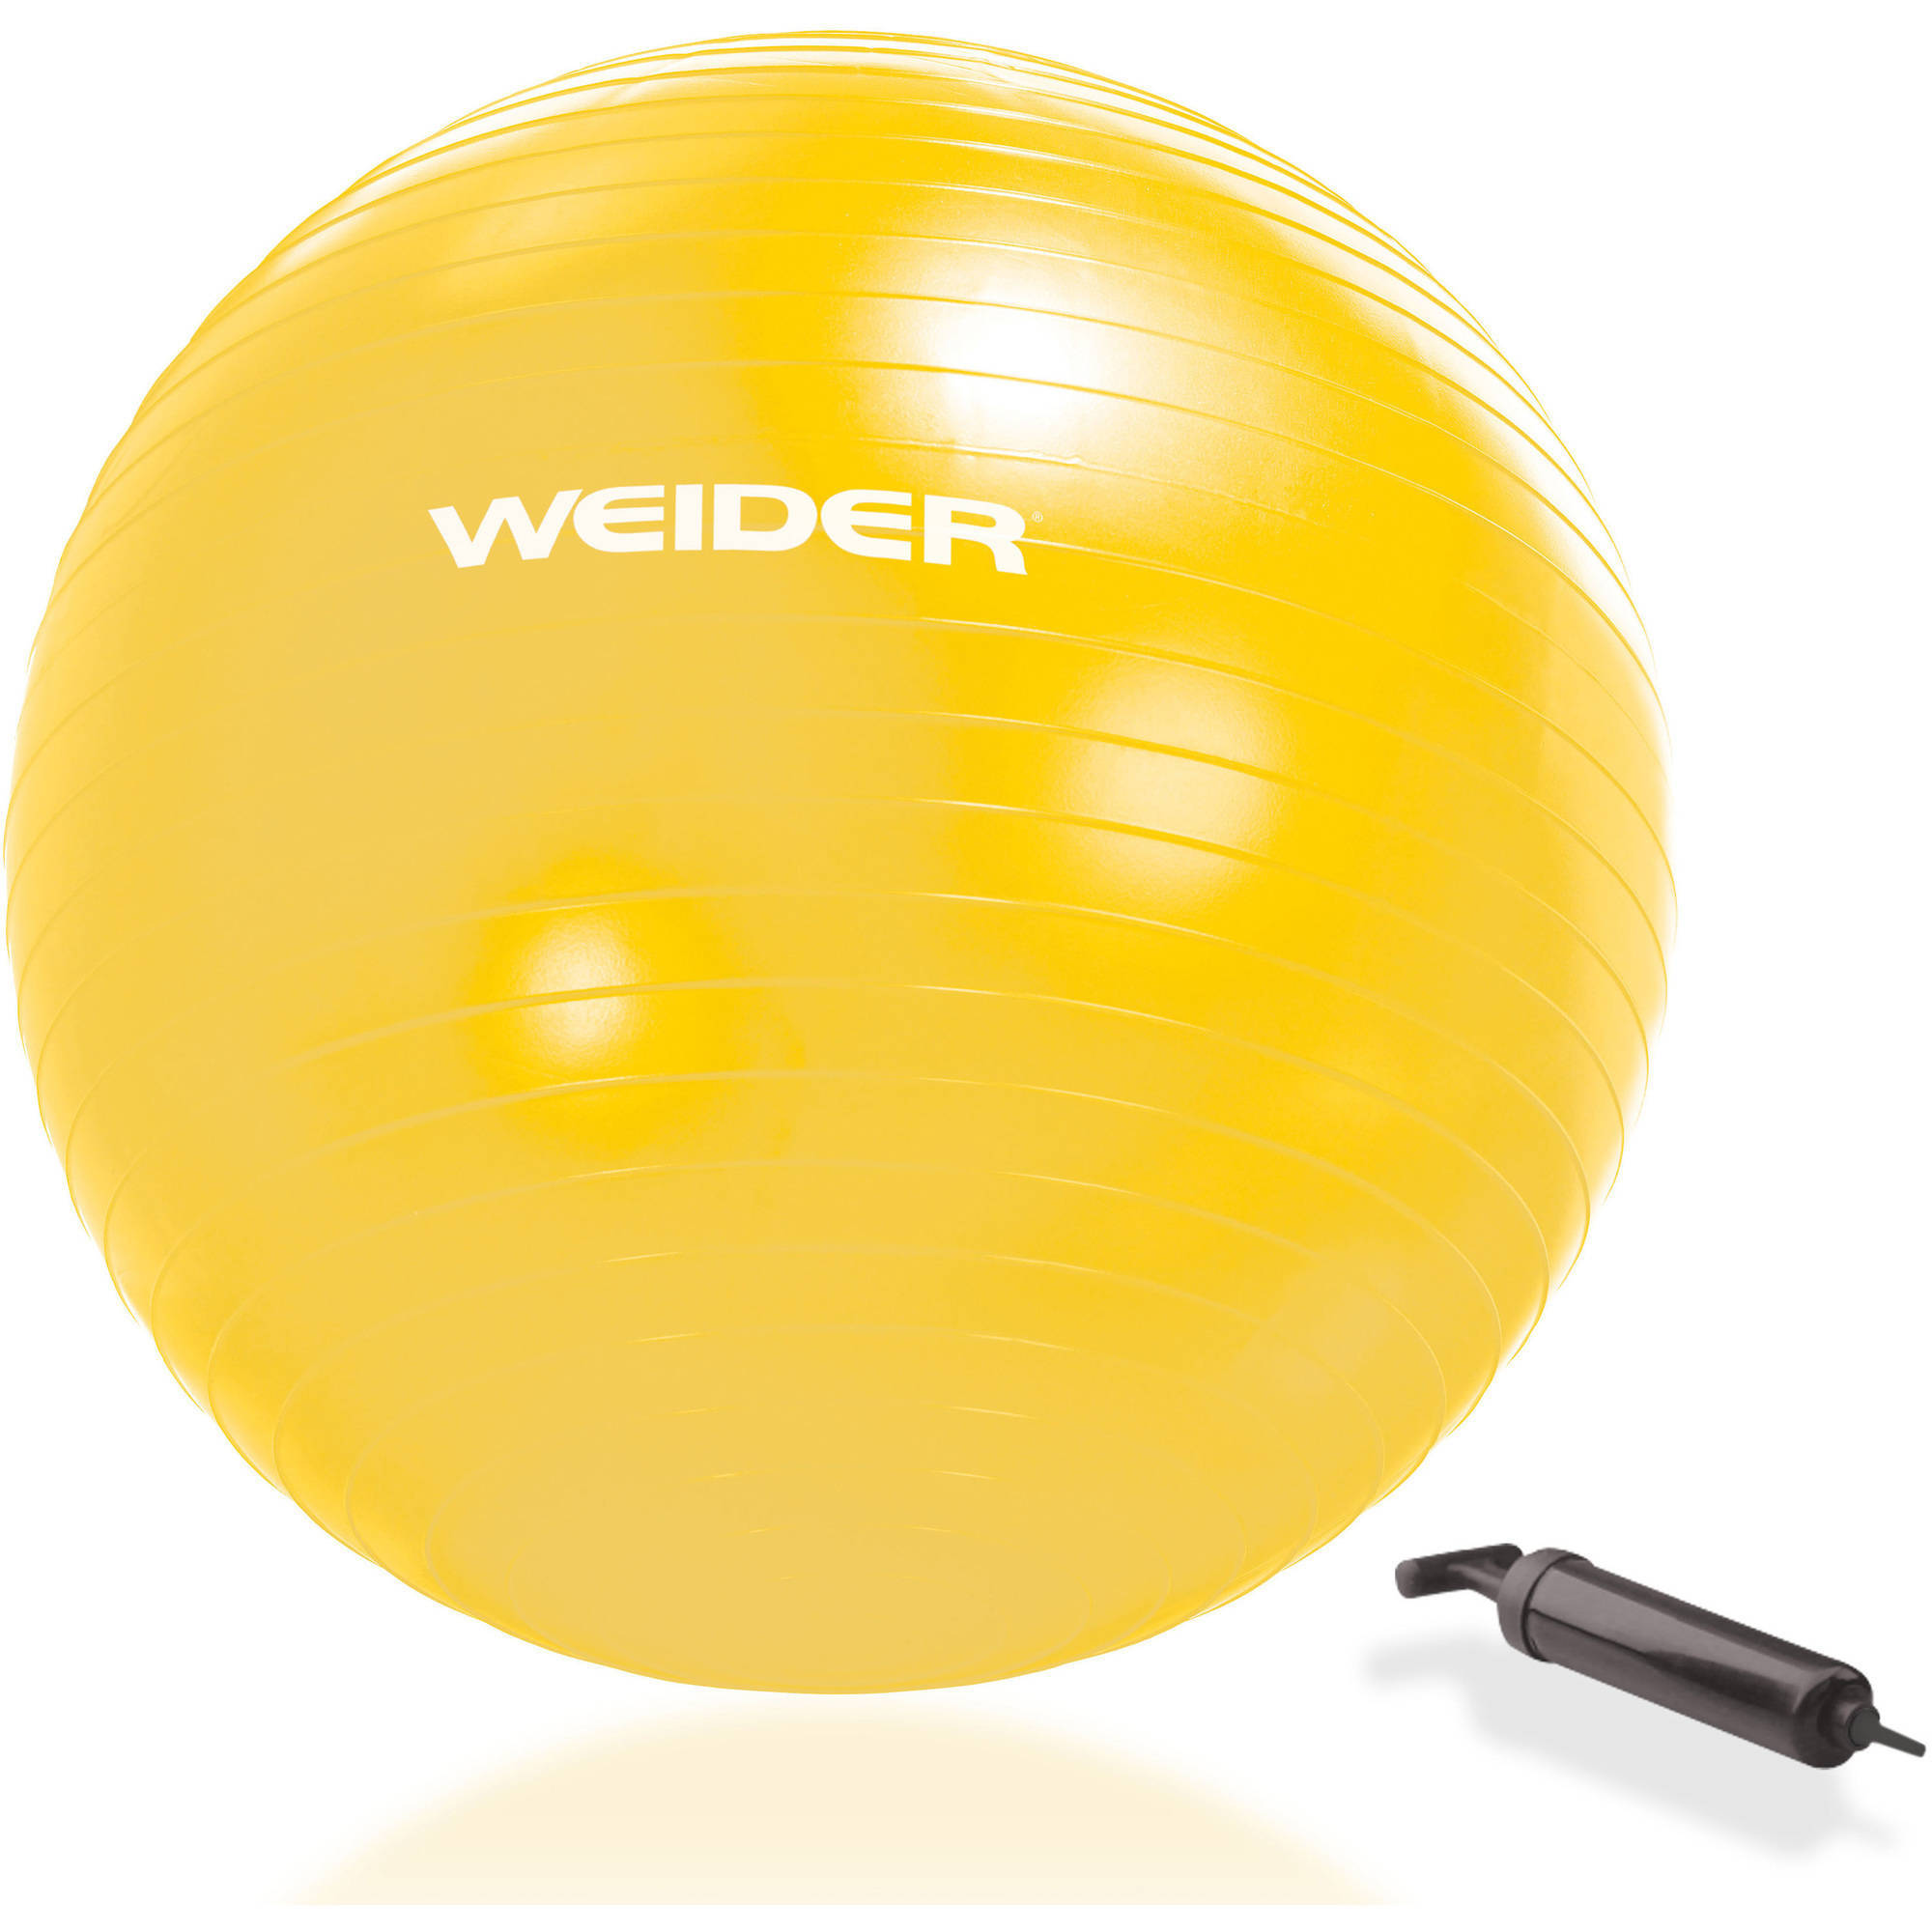 Weider Stability Exercise Ball, 55-75 cm